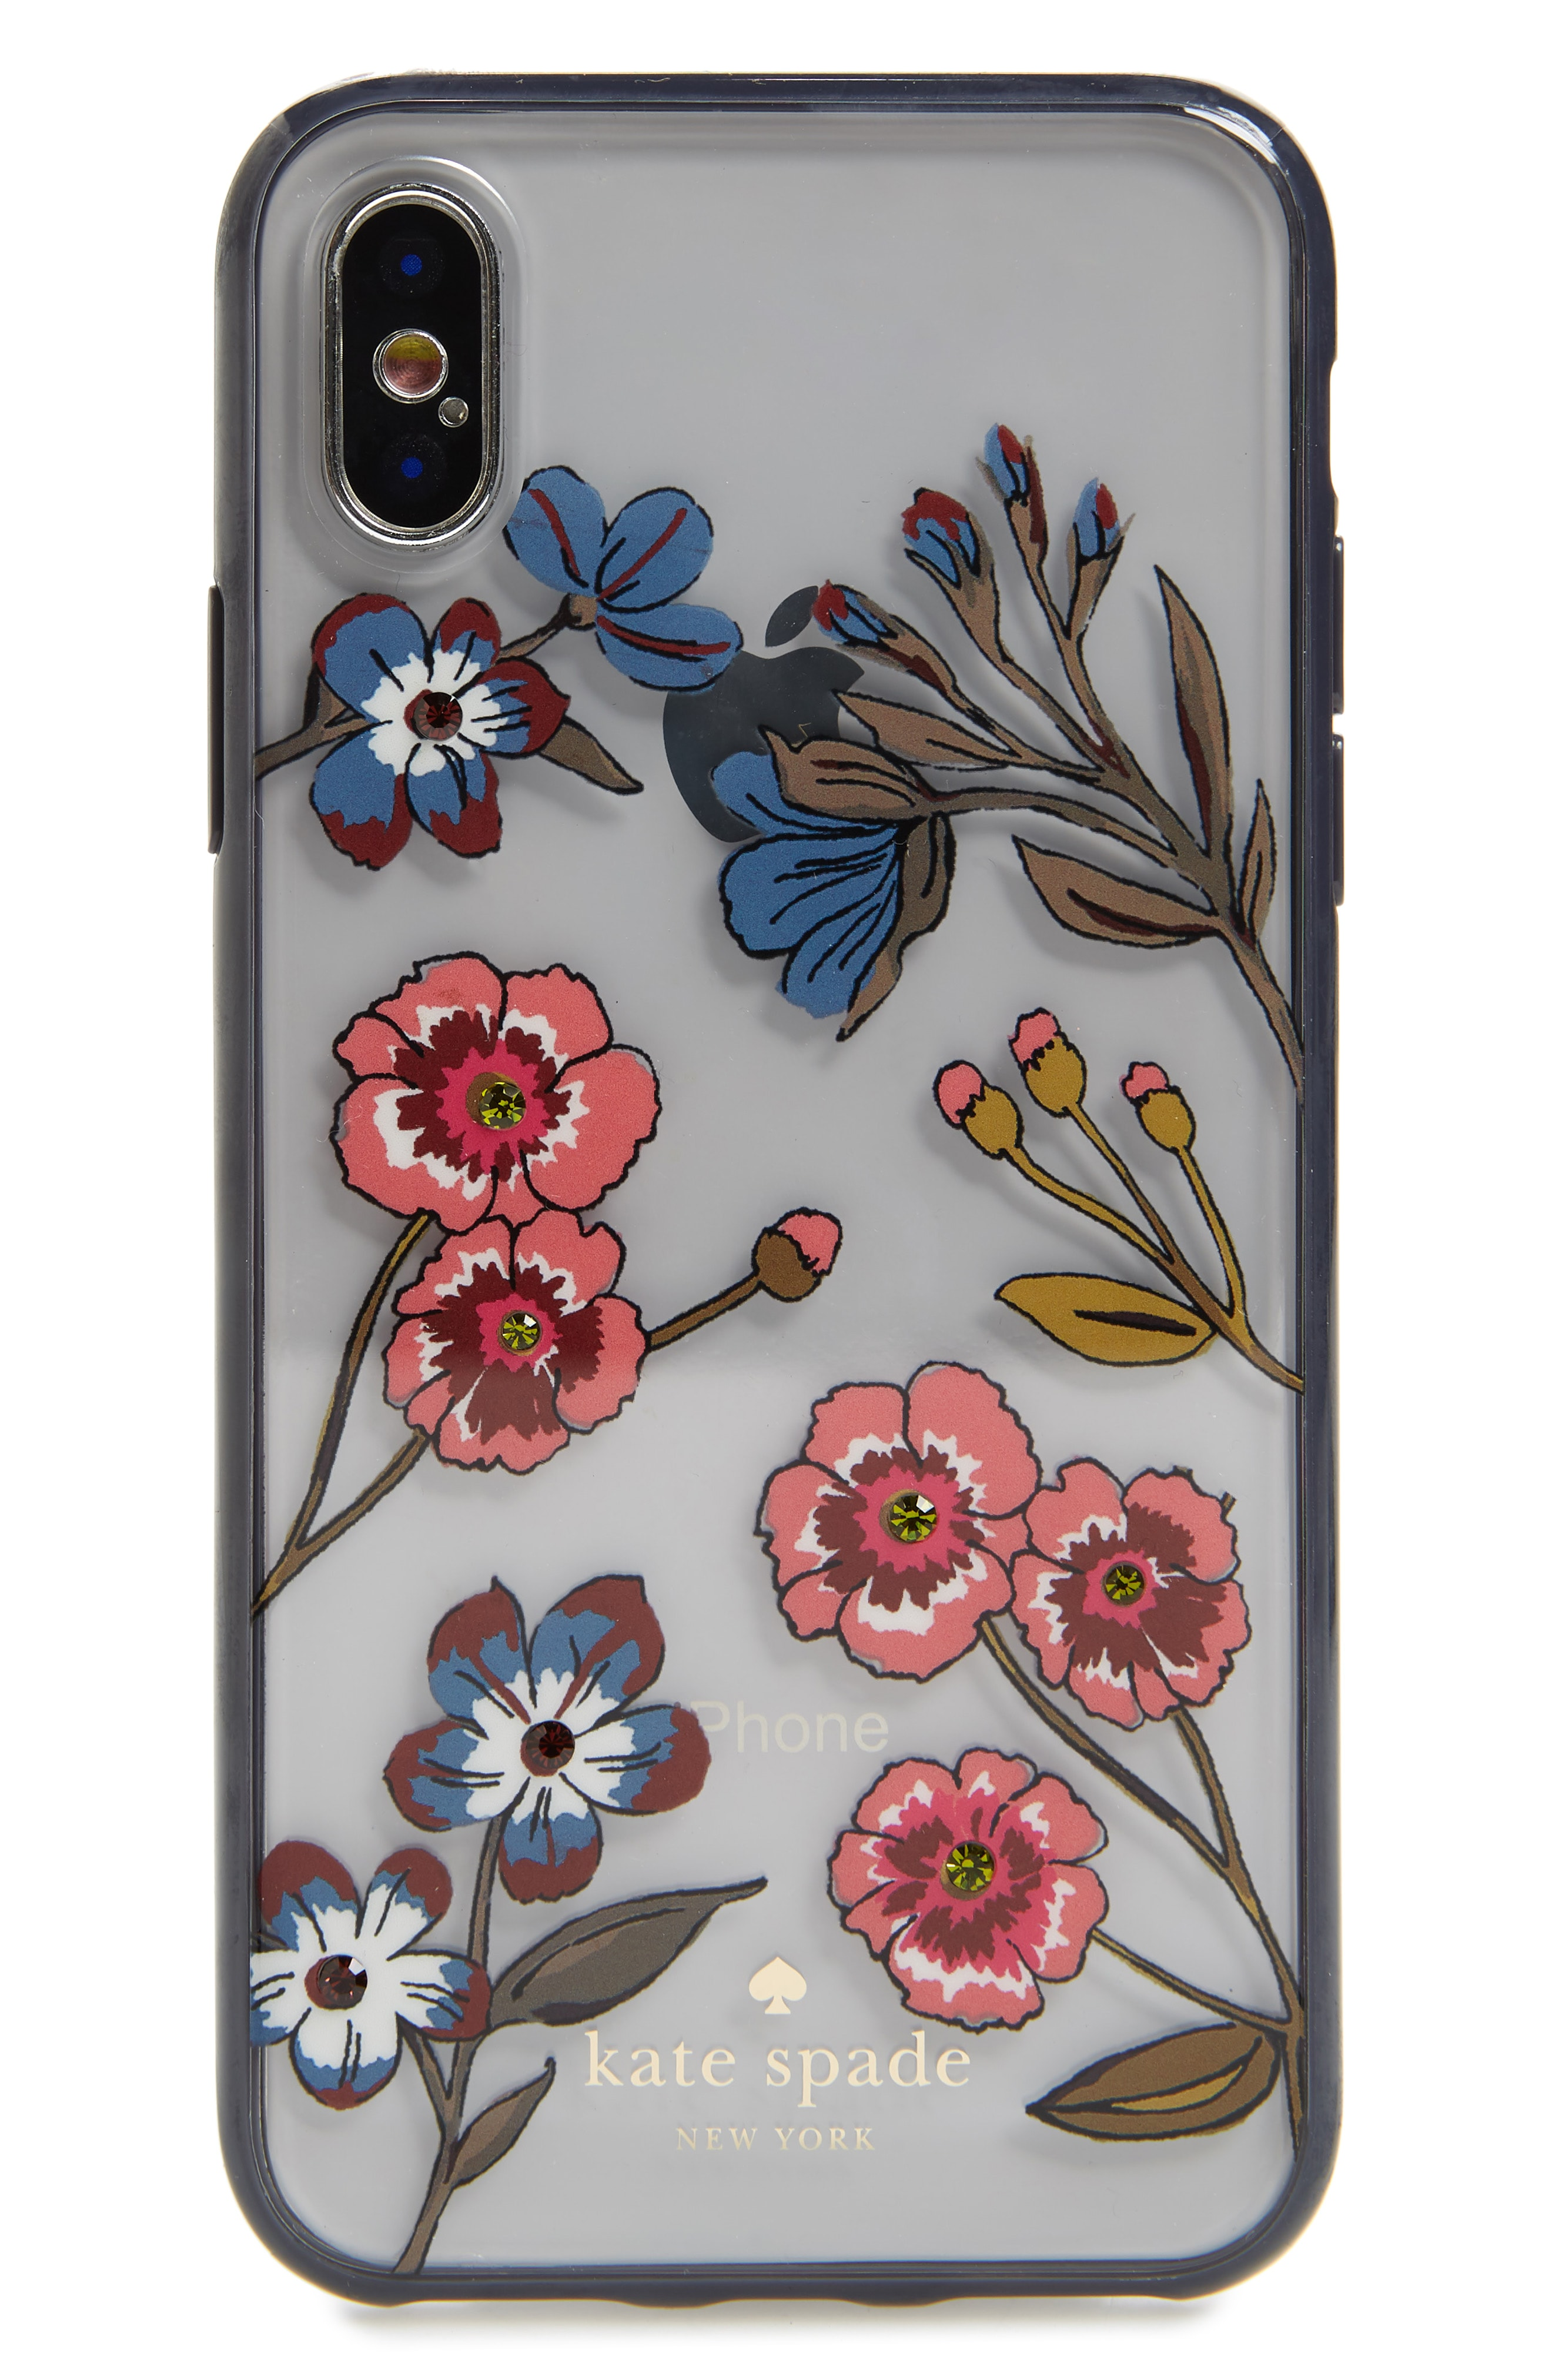 kate spade new york jeweled meadow iPhone X/Xs case